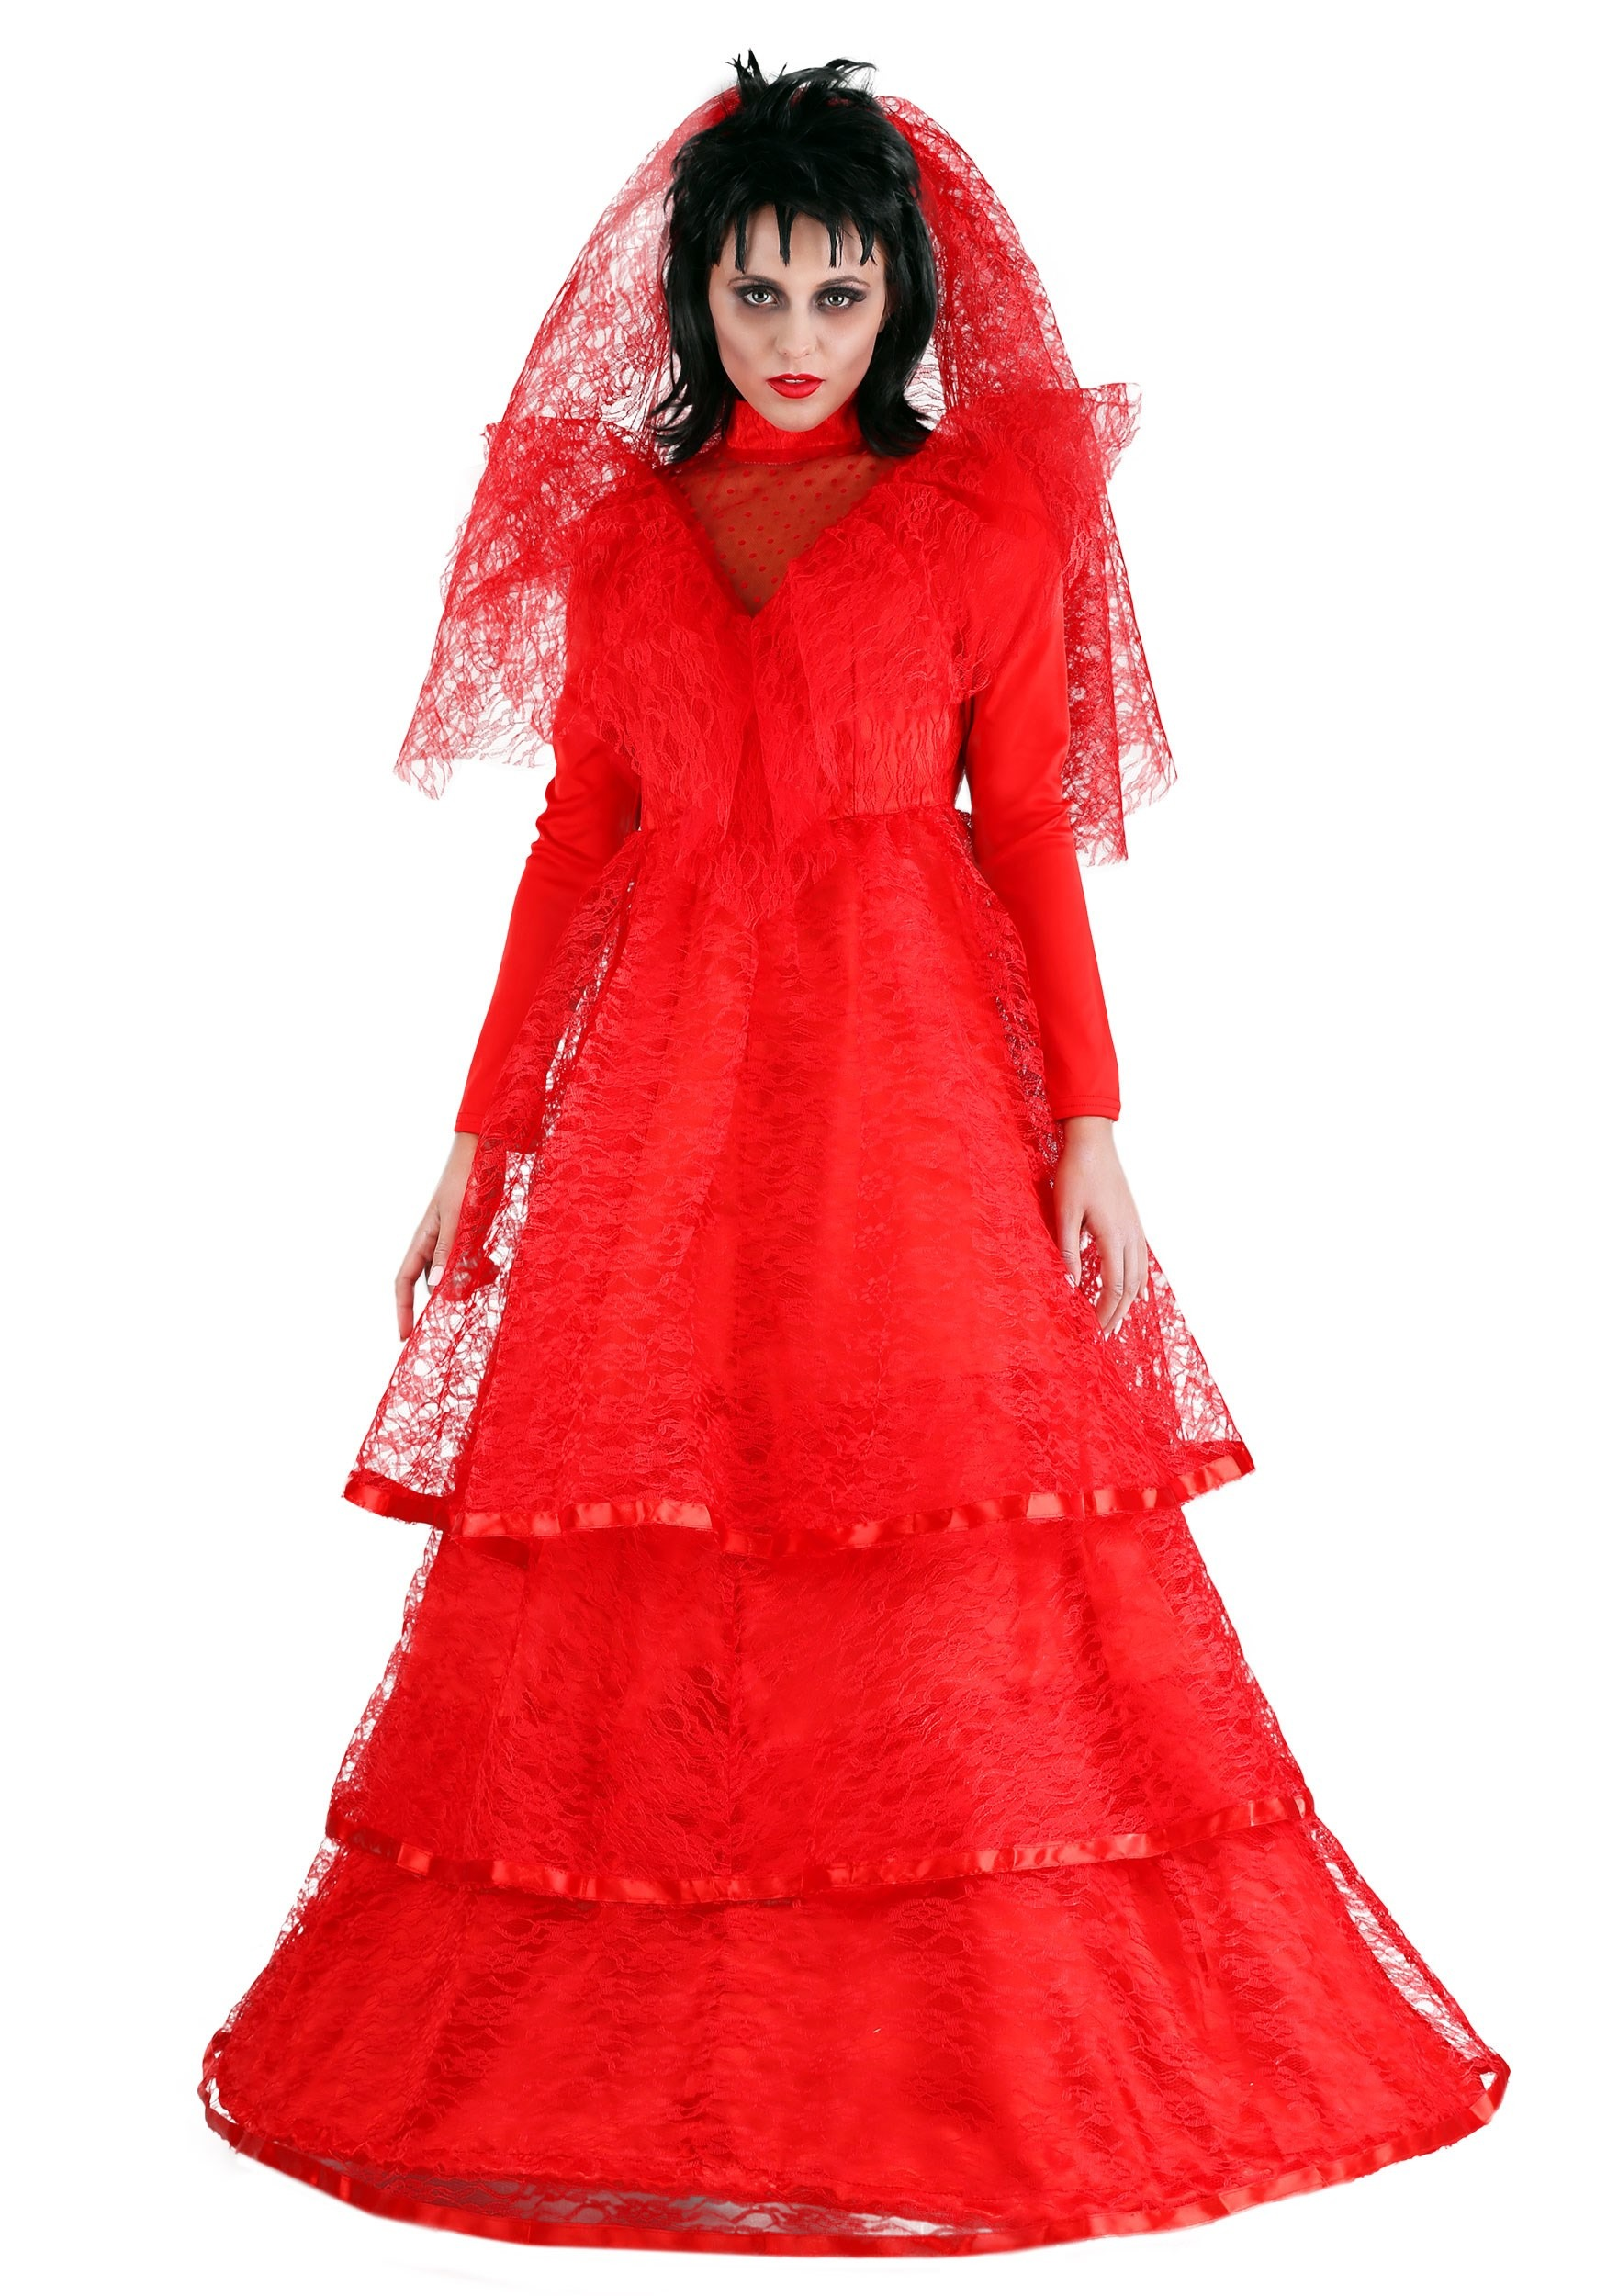 Red Gothic Wedding Dress Plus Size Costume | Red Ball Gown Dress